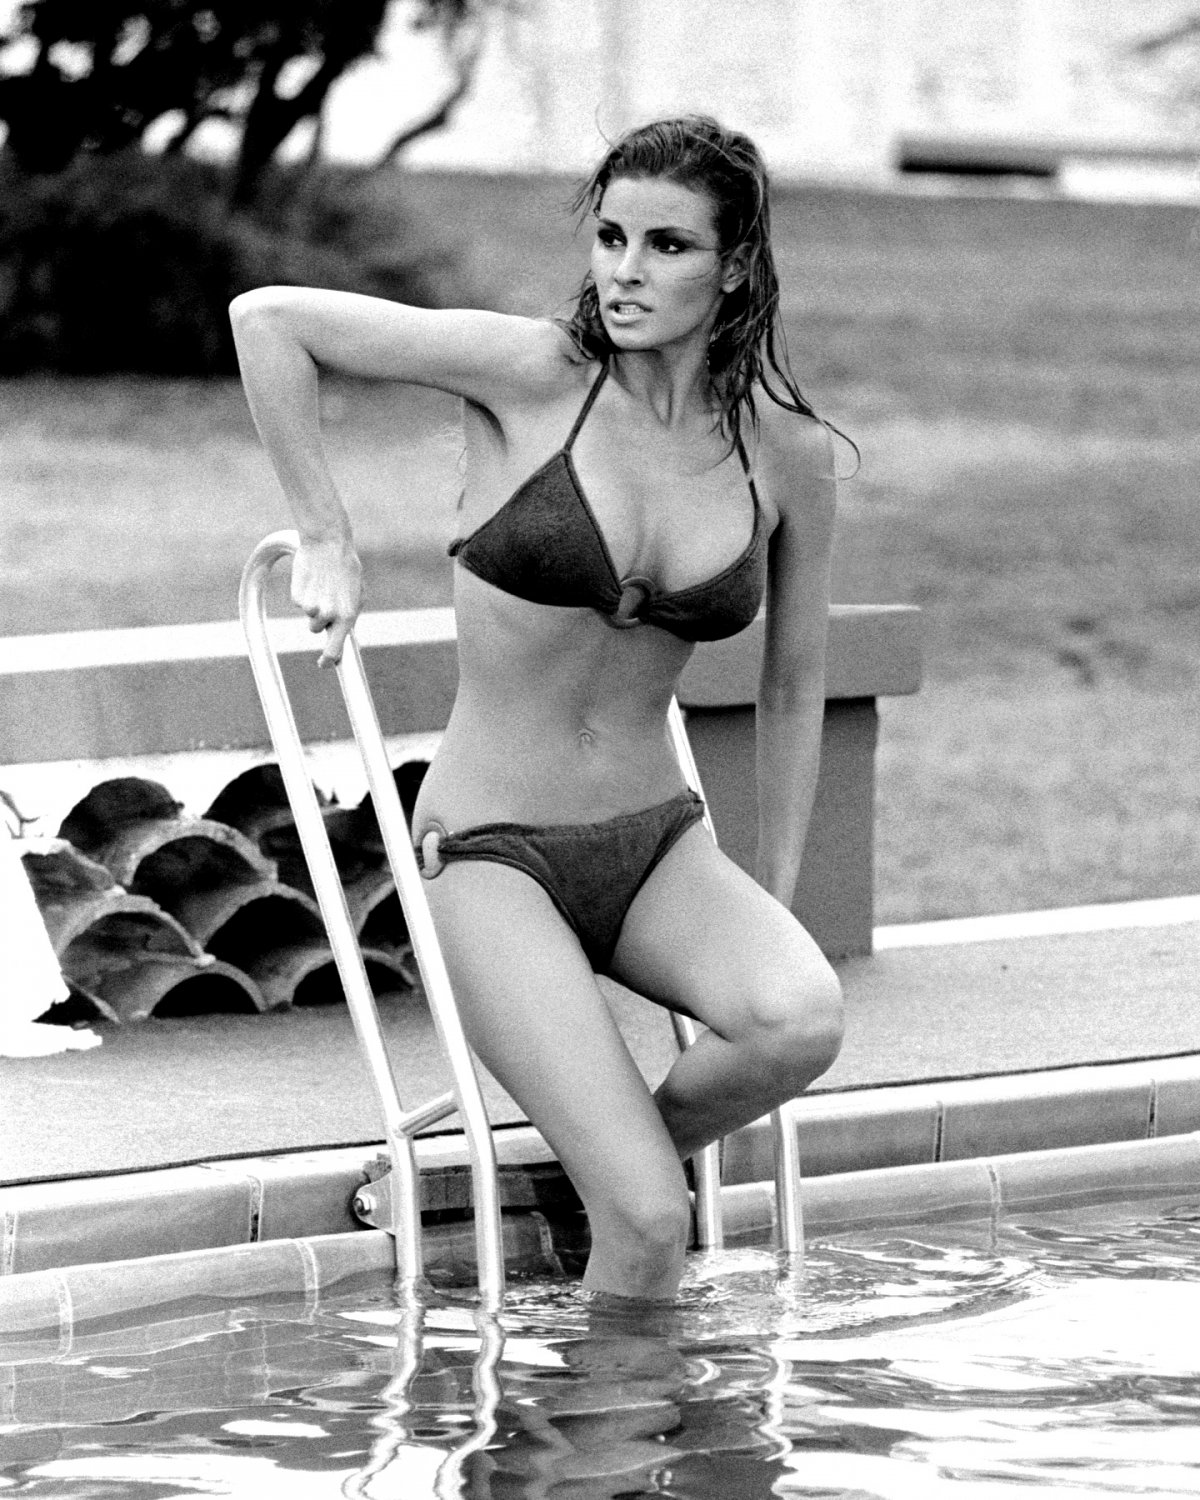 RAQUEL WELCH ACTRESS AND SEX-SYMBOL - 8X10 PUBLICITY PHOTO (ZY-426)